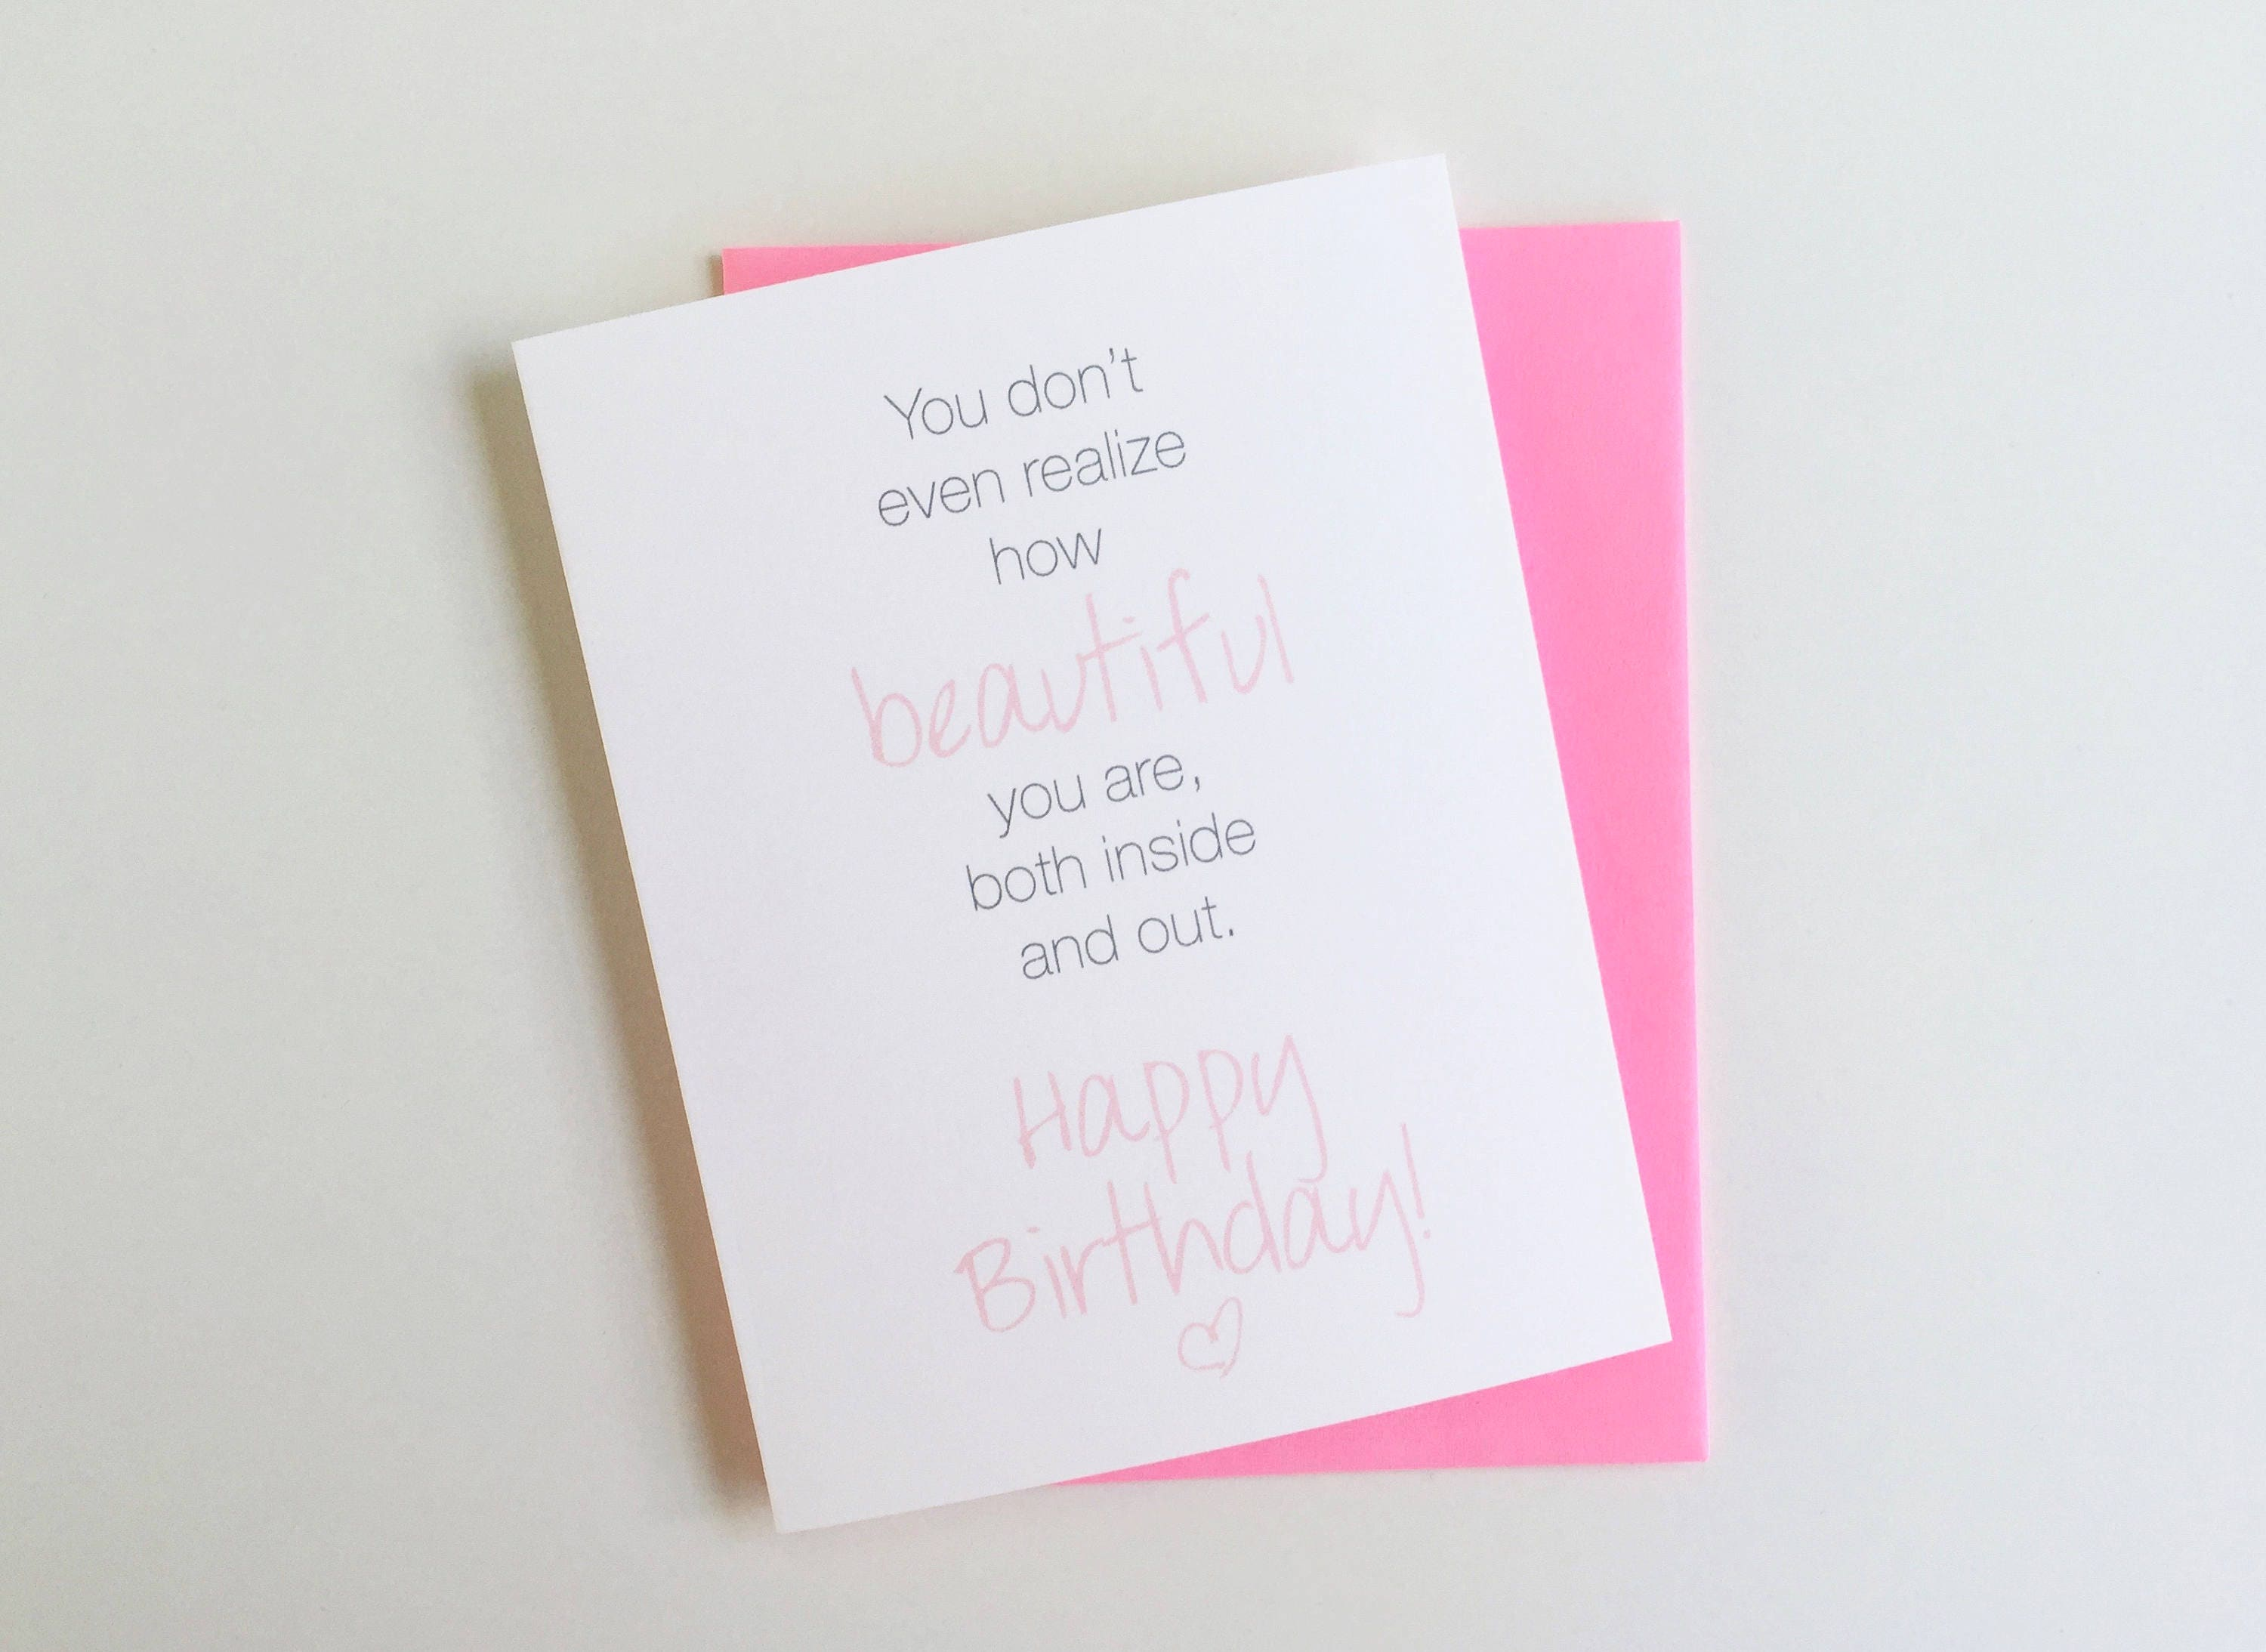 Inspirational happy birthday daughter cards images eccleshallfc bookmarktalkfo Images